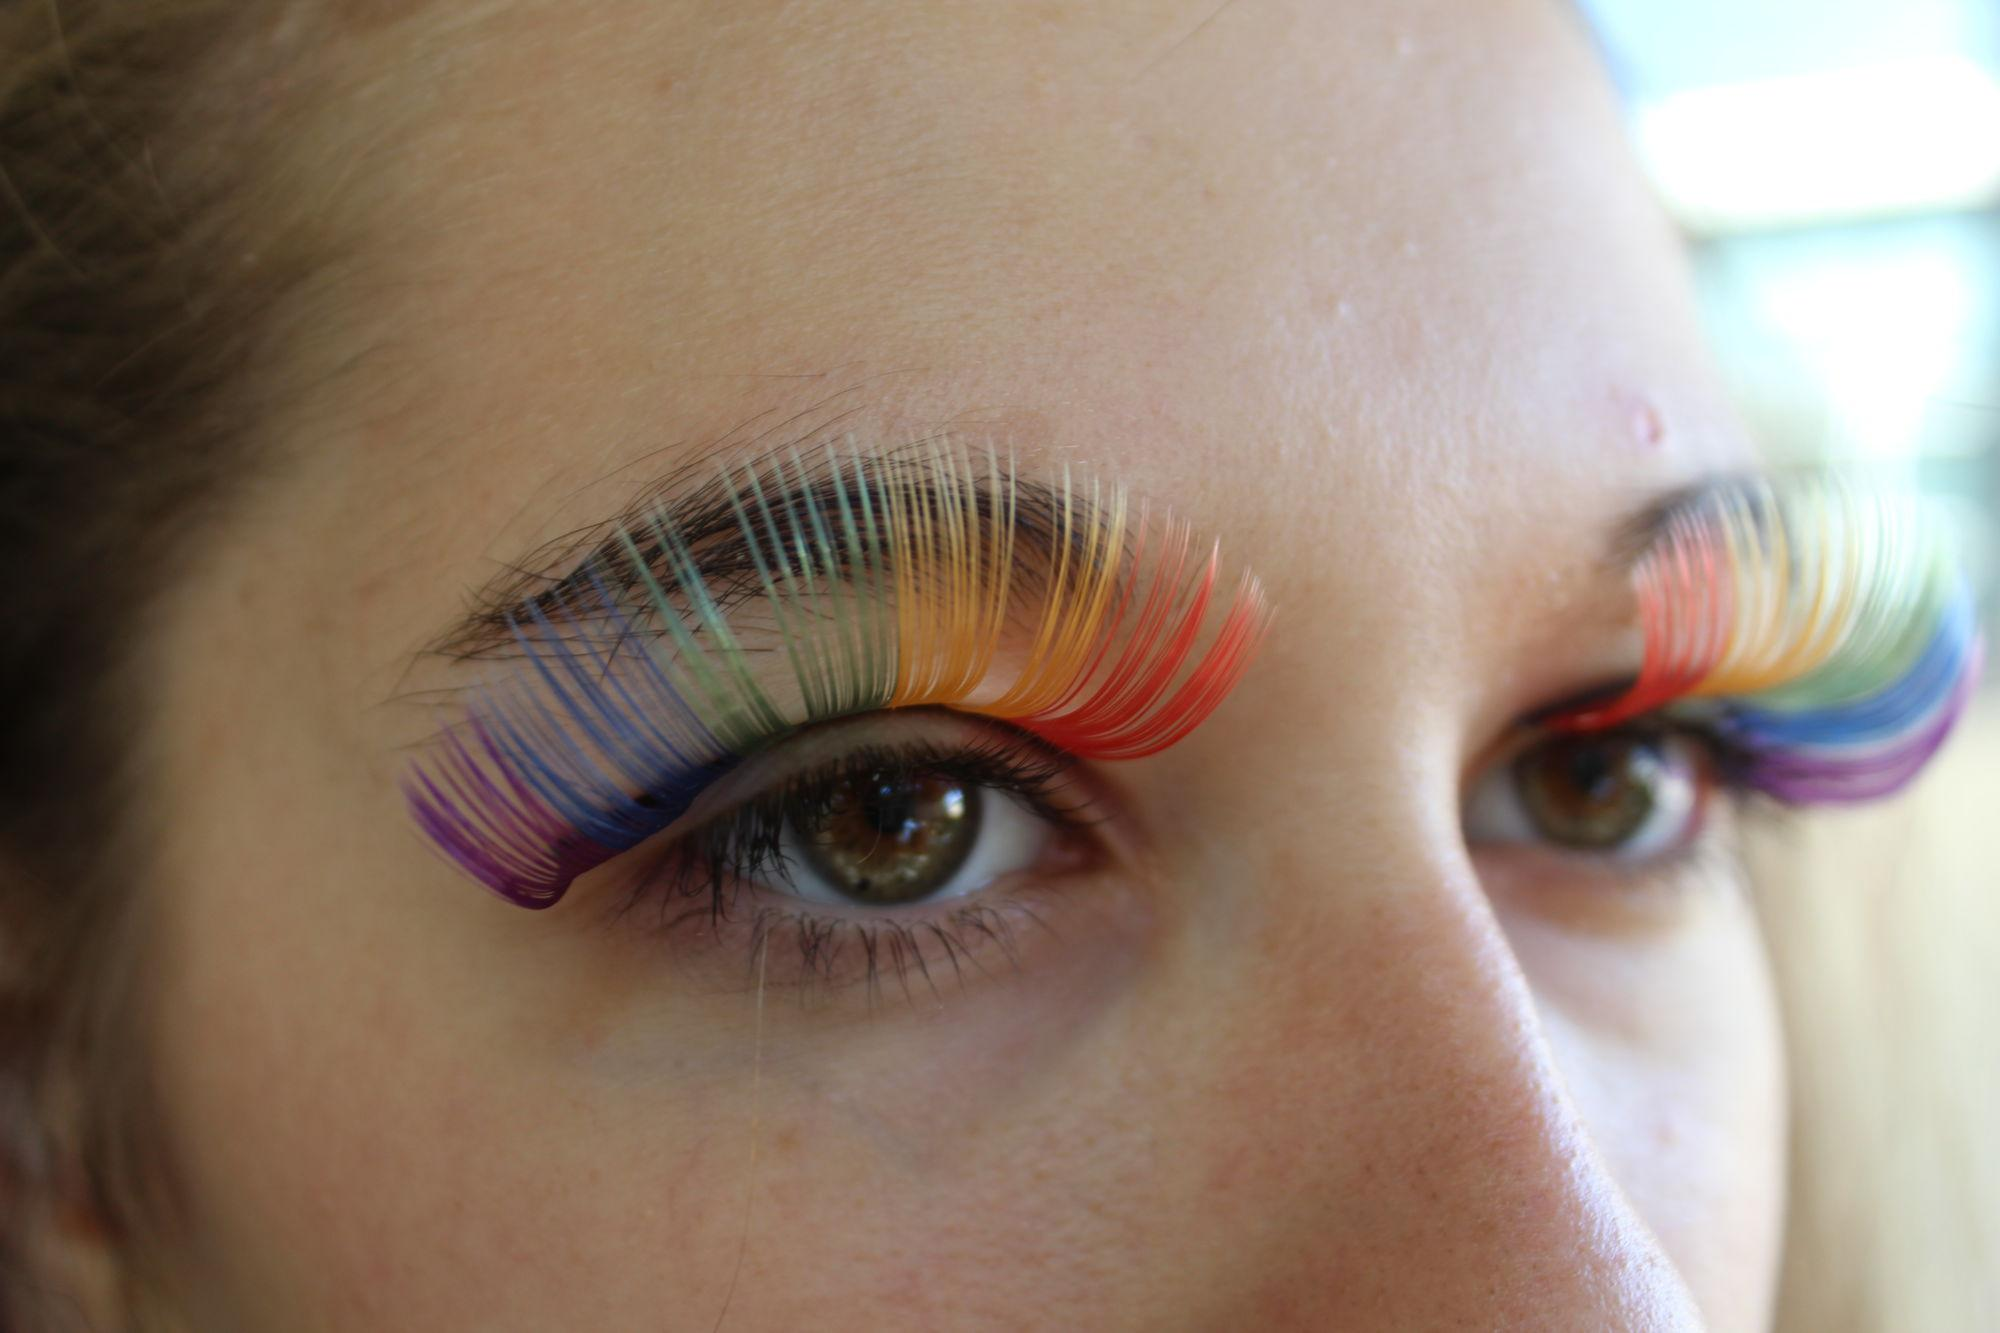 Senior+Natasha+Arnowitz+wears+colorful+eyelash+extensions%2C+but+not+the+rest+of+her+costume.%0A